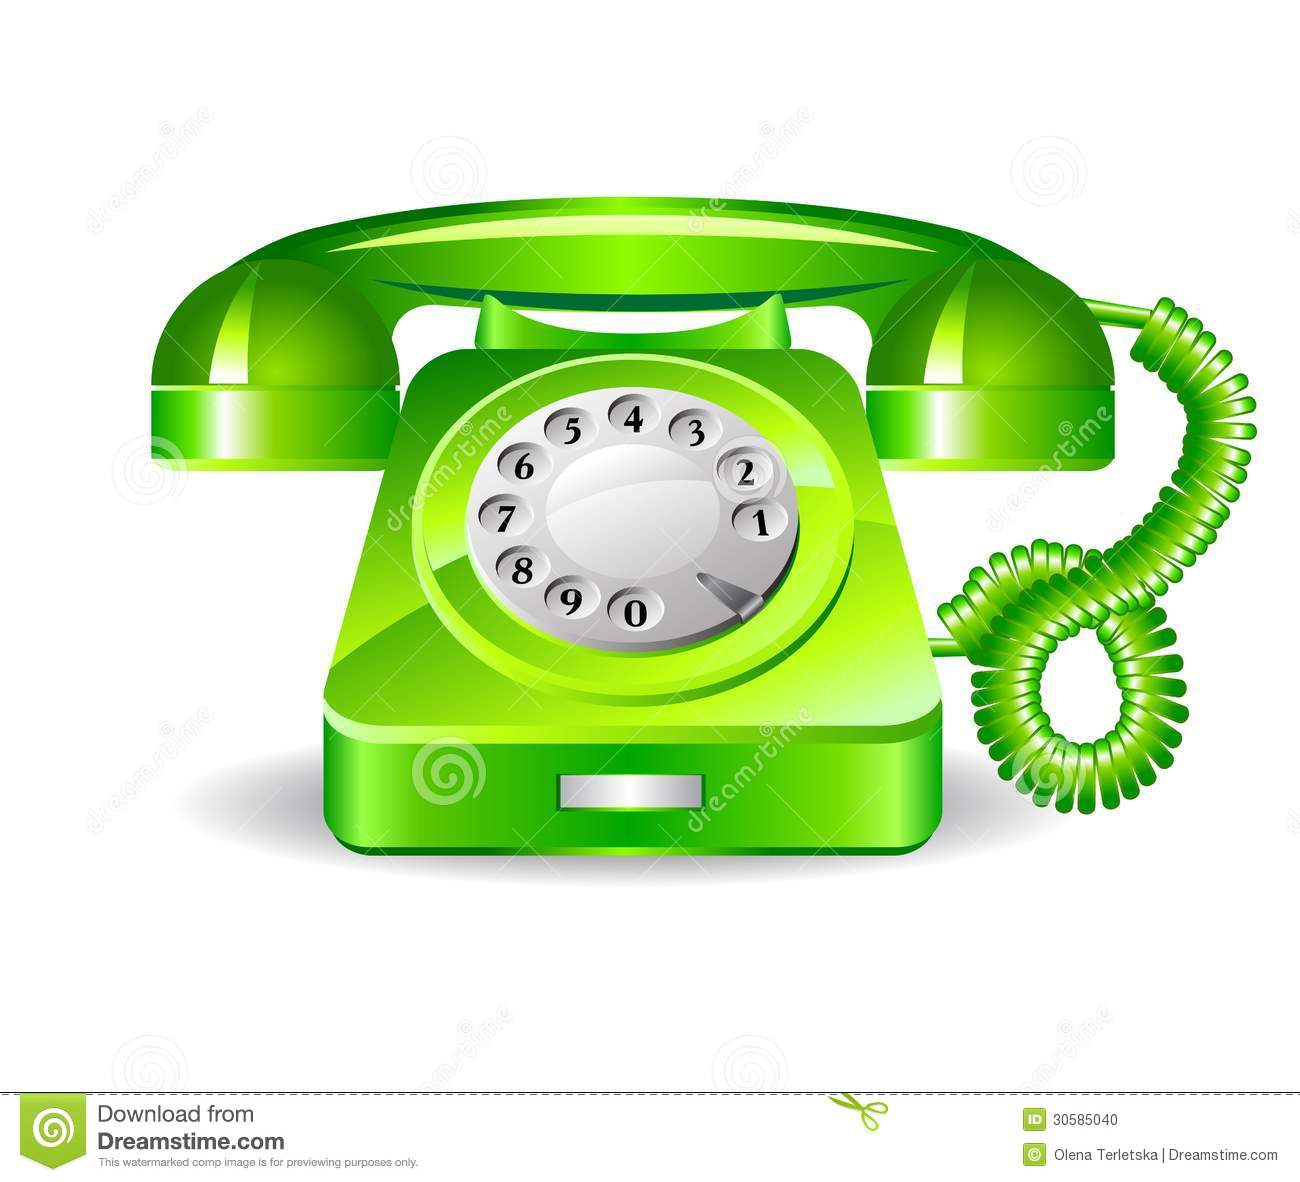 https://thumbs.dreamstime.com/z/retro-green-telephone-white-background-30585040.jpg